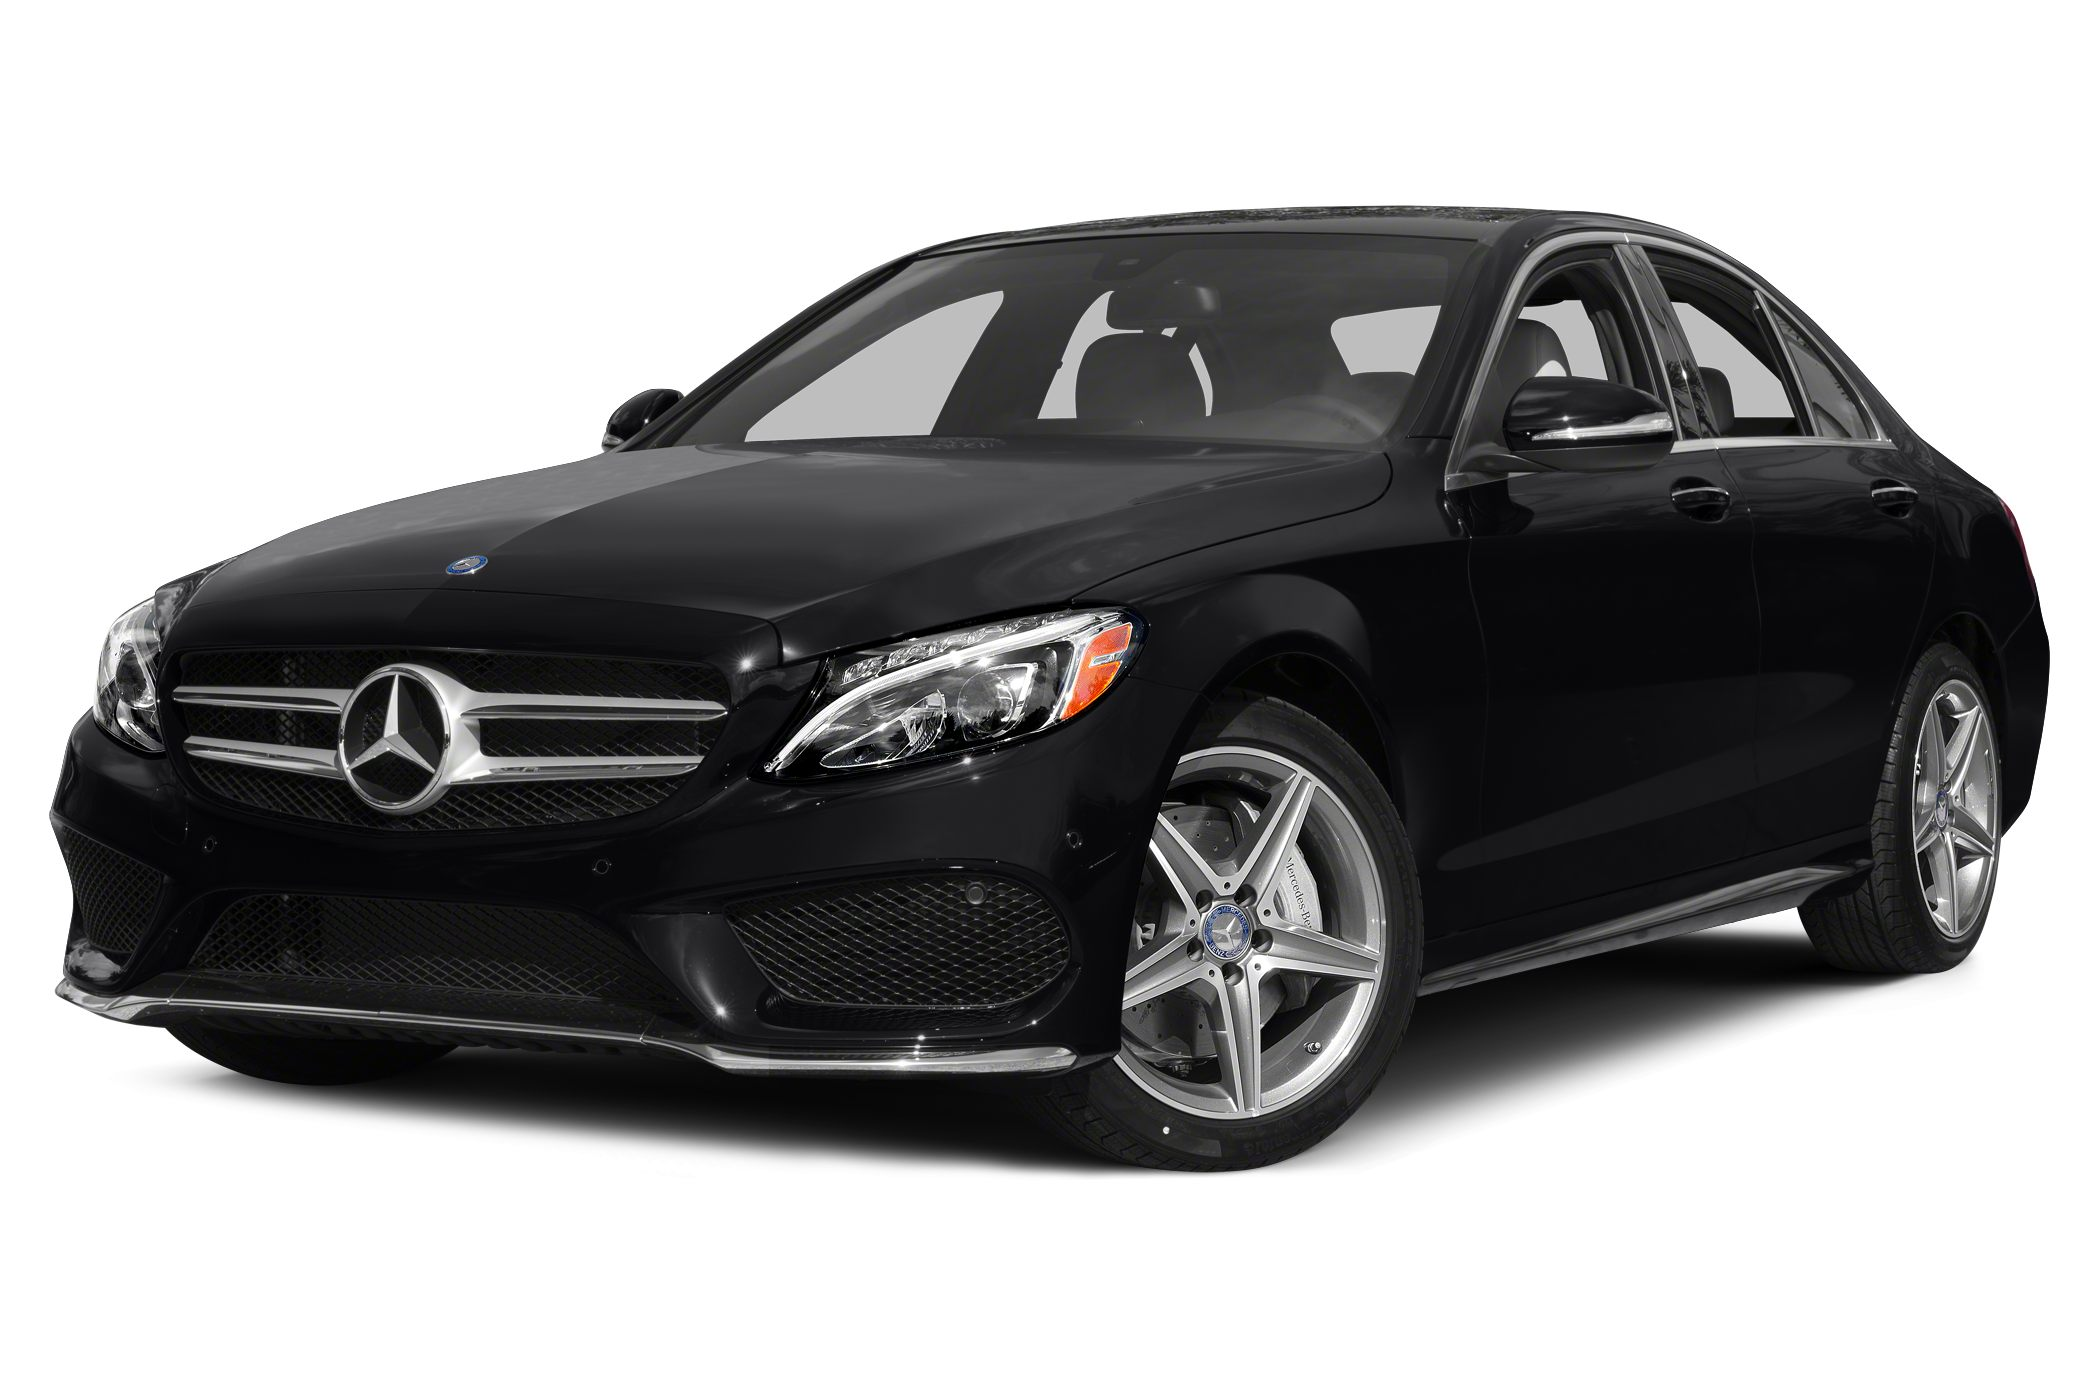 2015 Mercedes-Benz C-Class C400 4MATIC Sedan for sale in Atlanta for $54,235 with 0 miles.